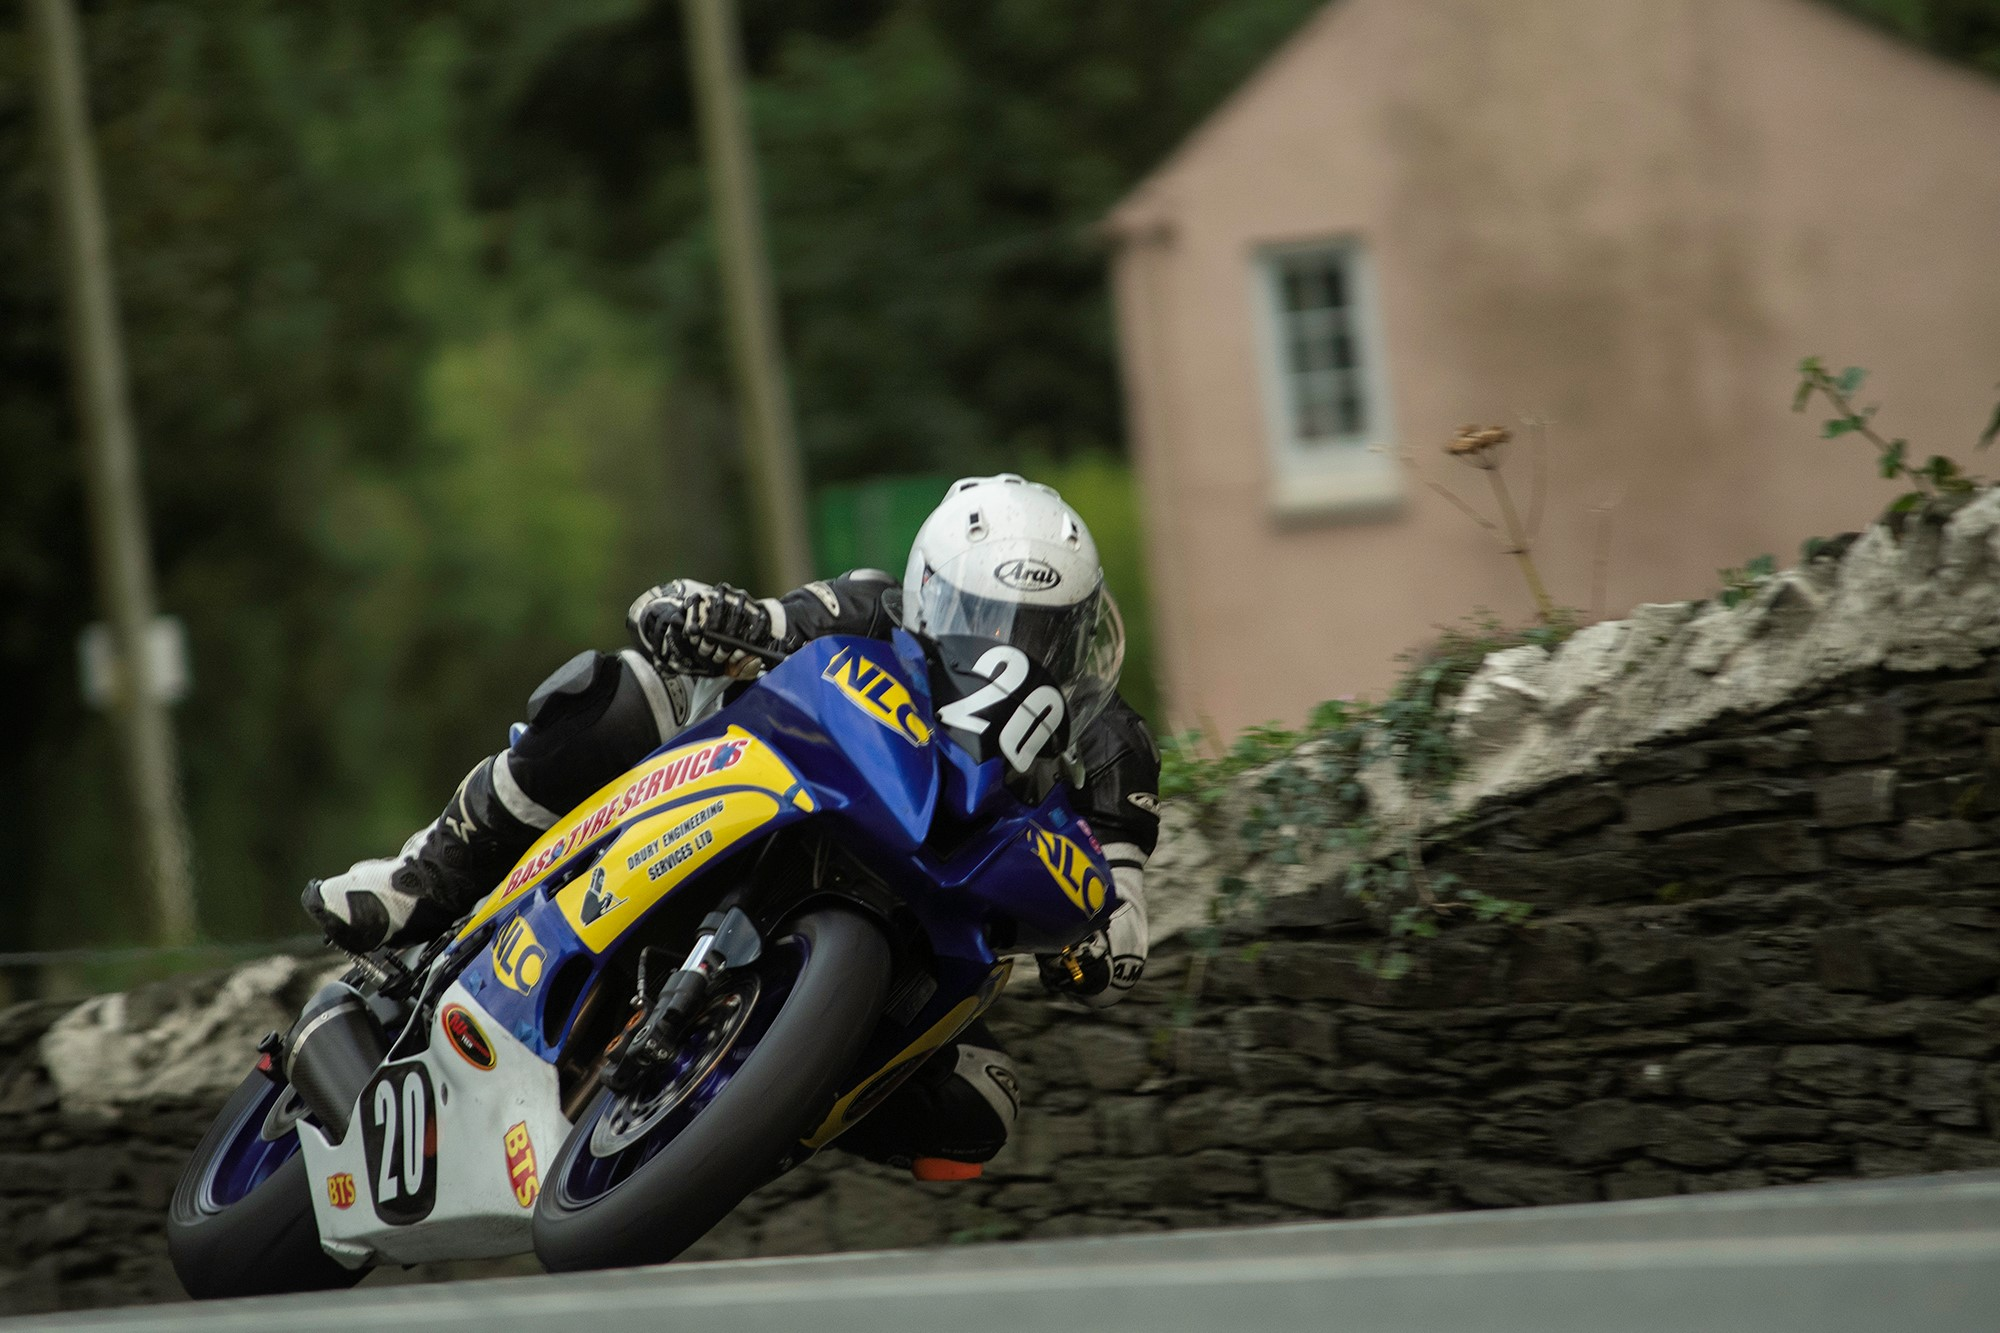 Manx Grand Prix: Hind Continues To Set Pace, 11 Newcomers Past 100 Mph Lap Mark